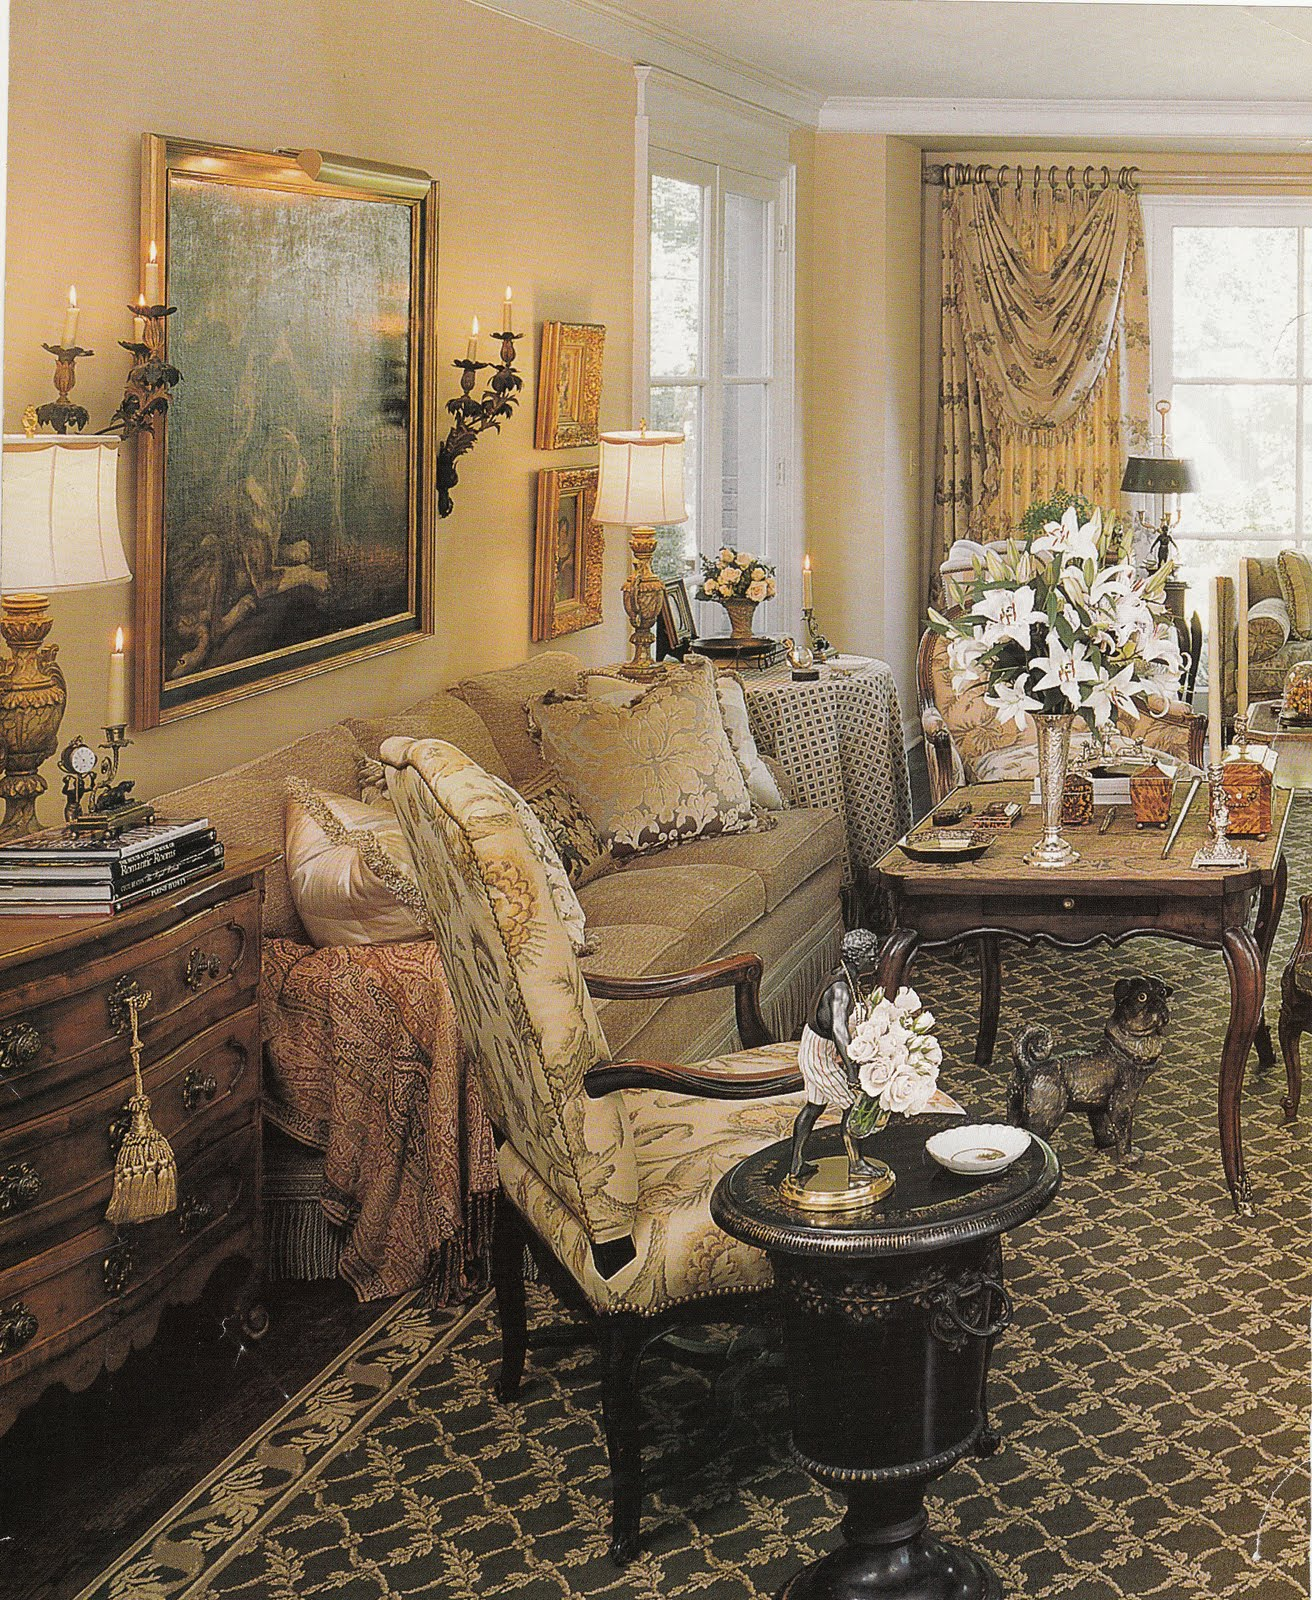 Another Perfectly Accessorized Room With A Tea Table In Front Of The